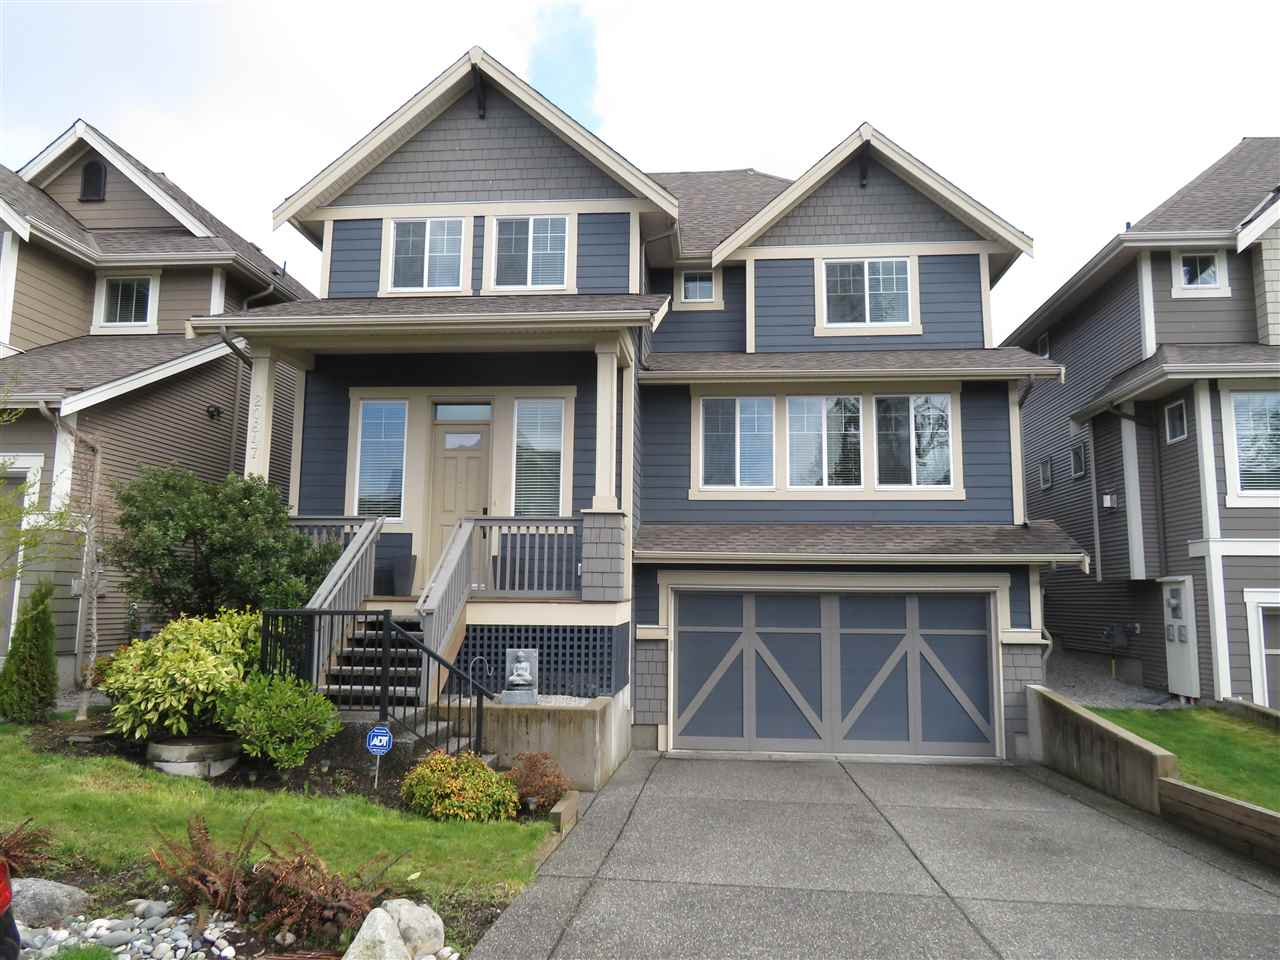 Main Photo: 20847 71A Avenue in Langley: Willoughby Heights House for sale : MLS®# R2257355